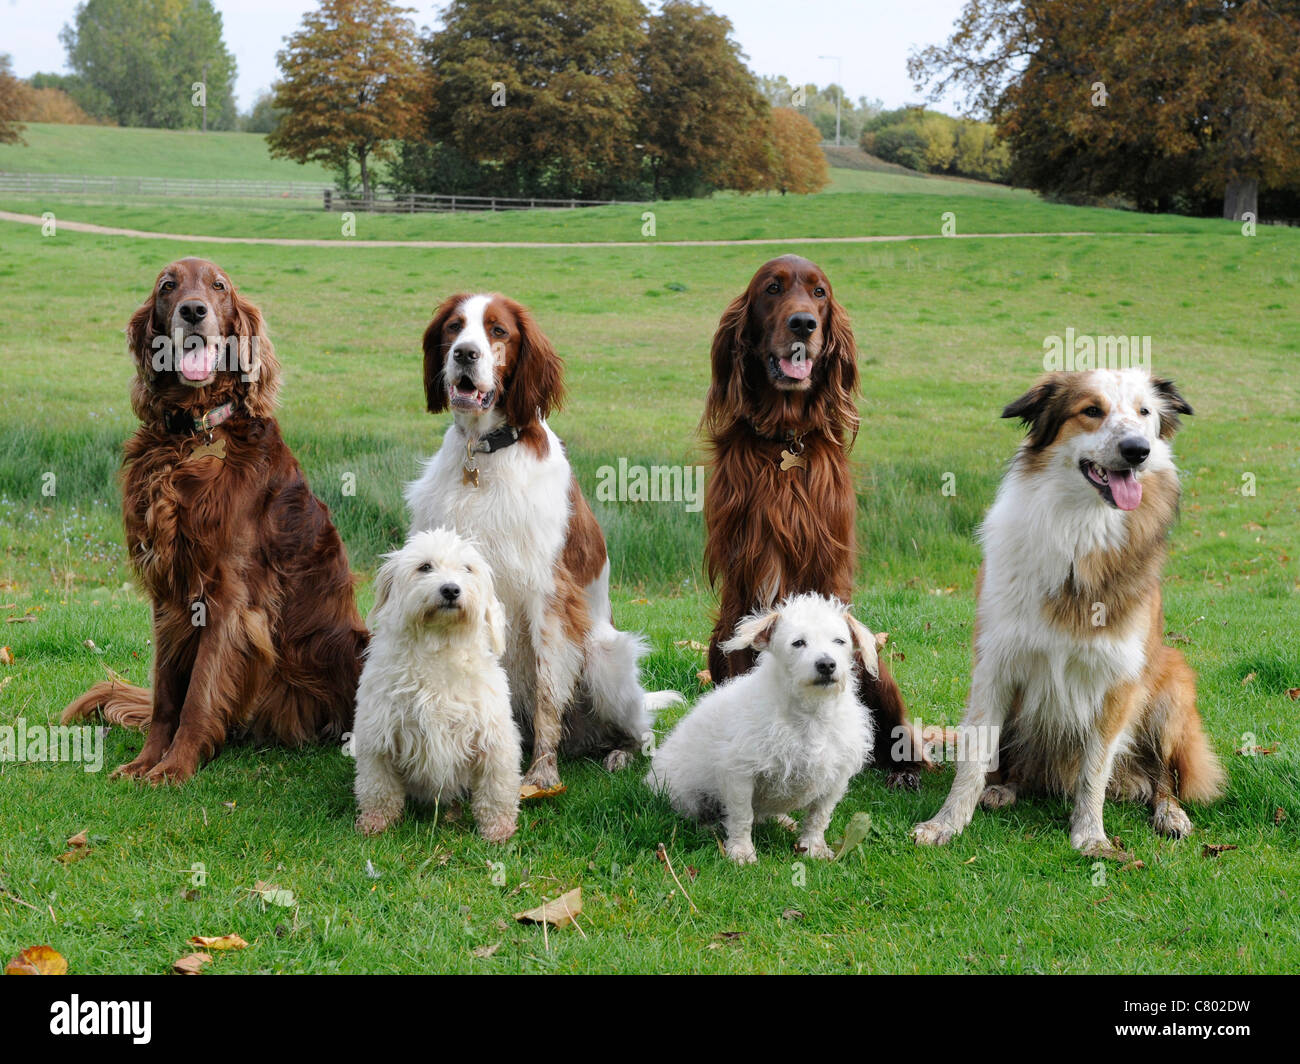 A Group Of 6 Obedient Dogs All Sitting Down Different